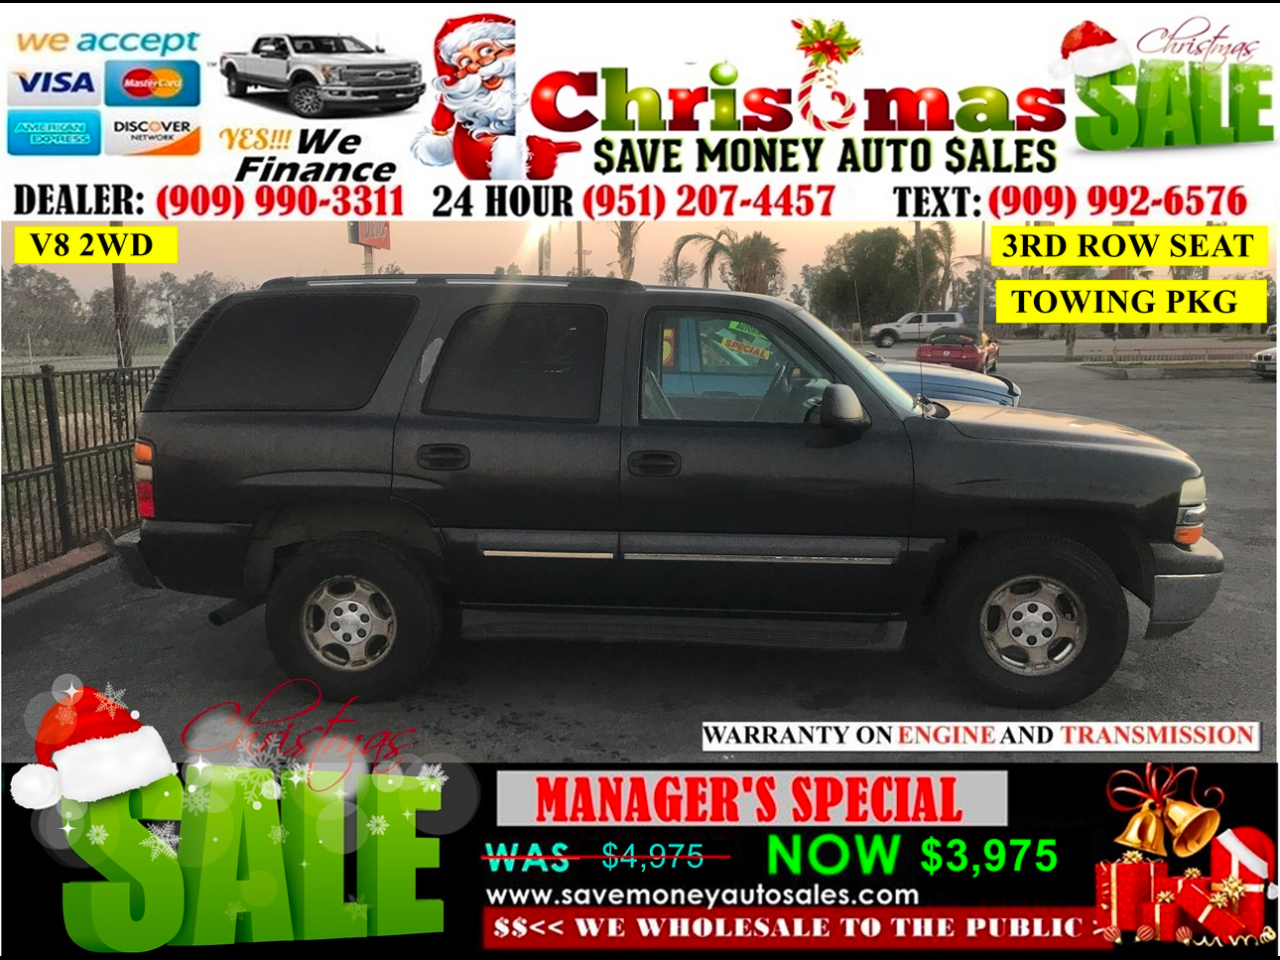 2004 Chevrolet Tahoe 2WD > 3RD ROW SEAT > TOWING PKG